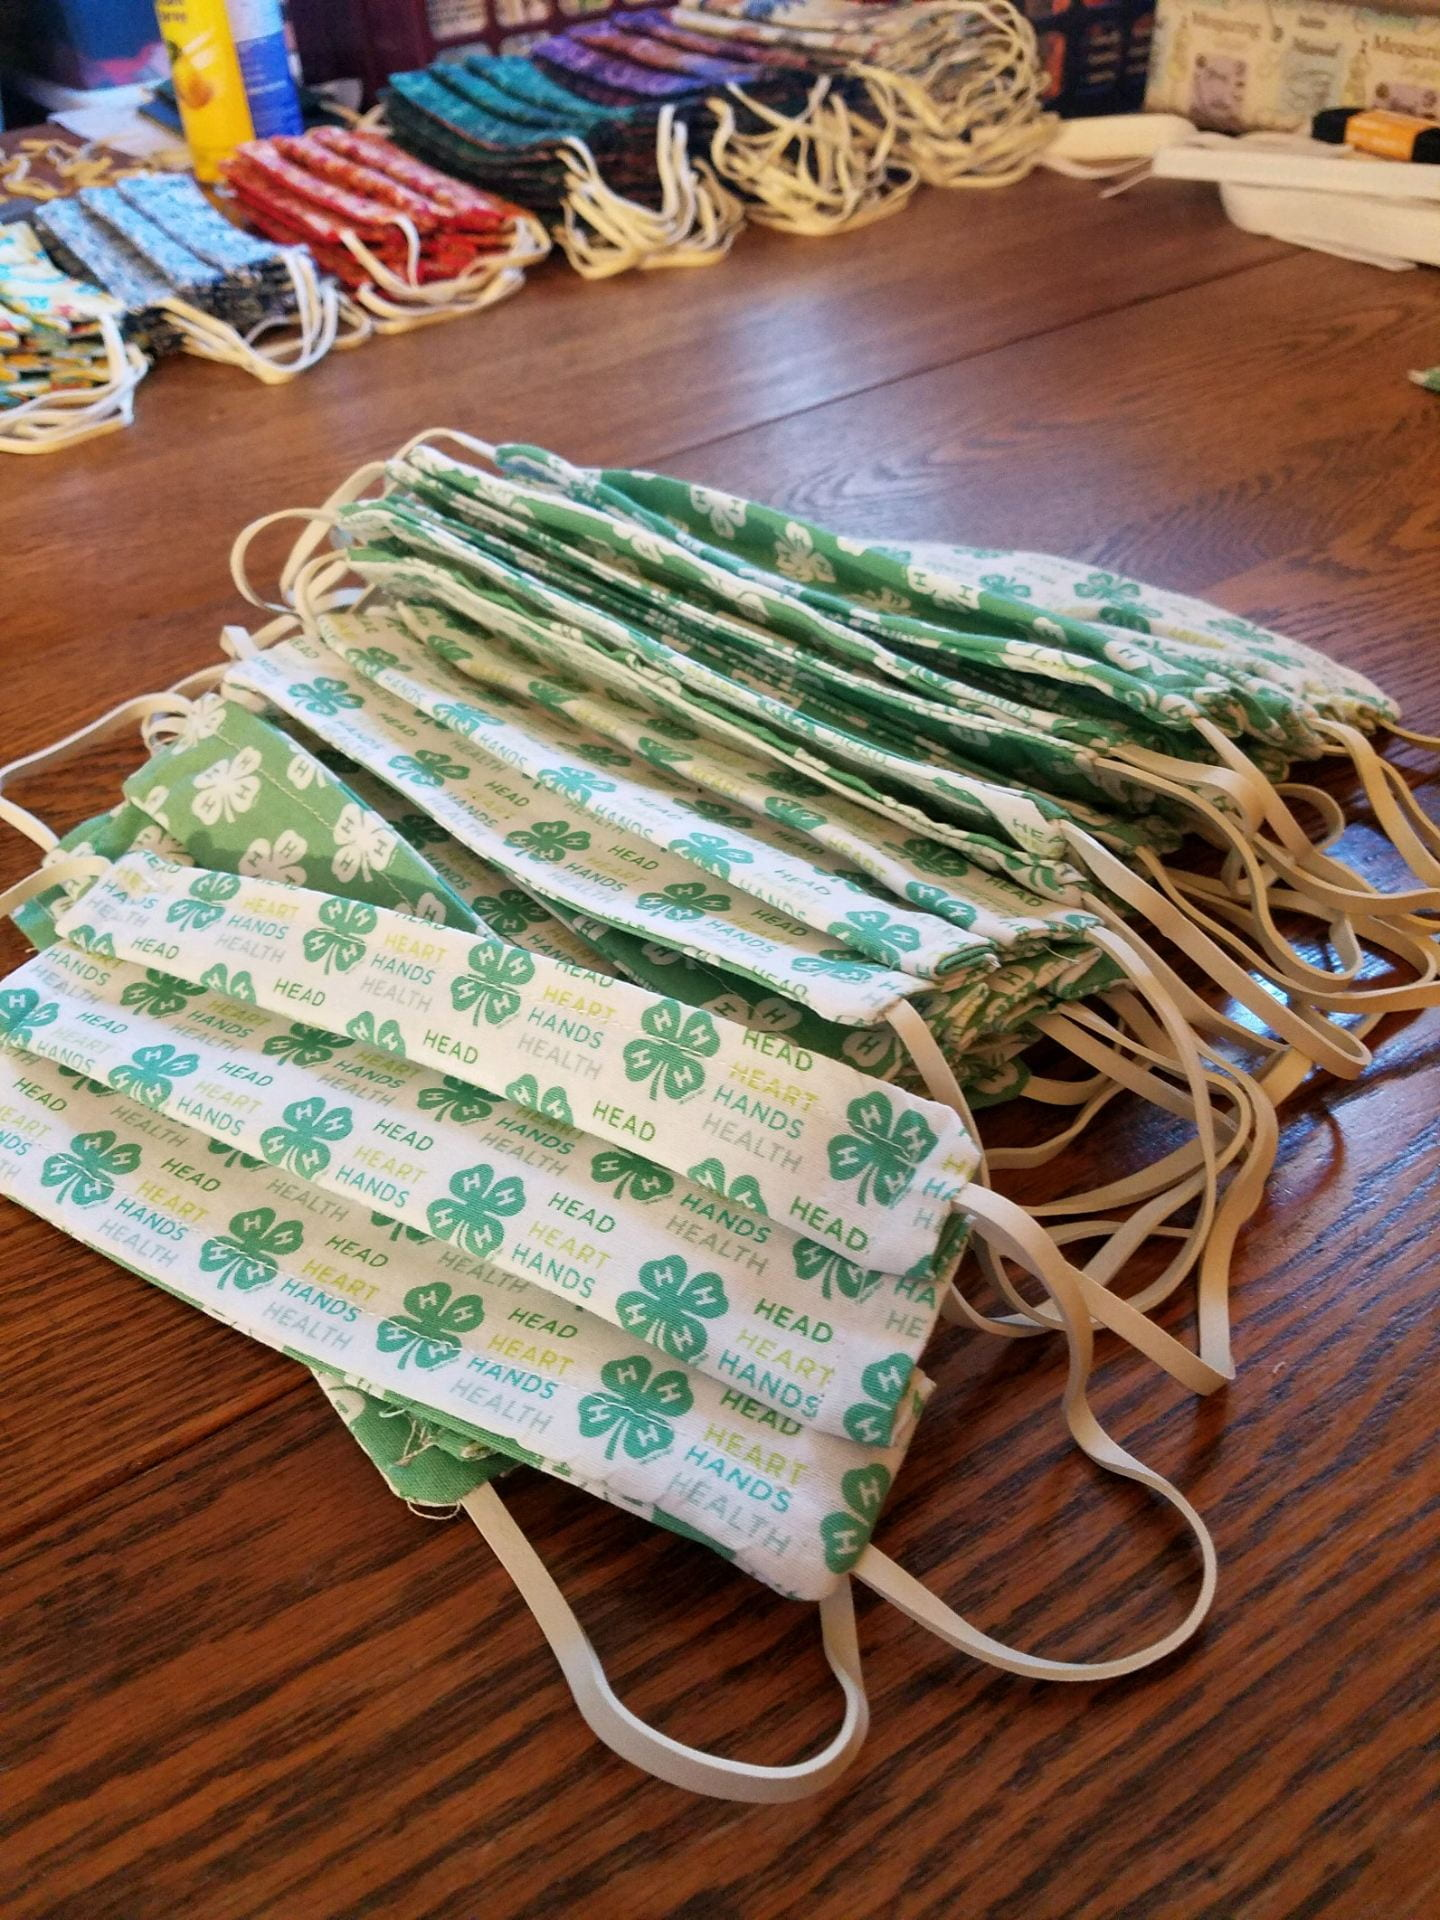 Face masks sewn by Orange County 4-Hers